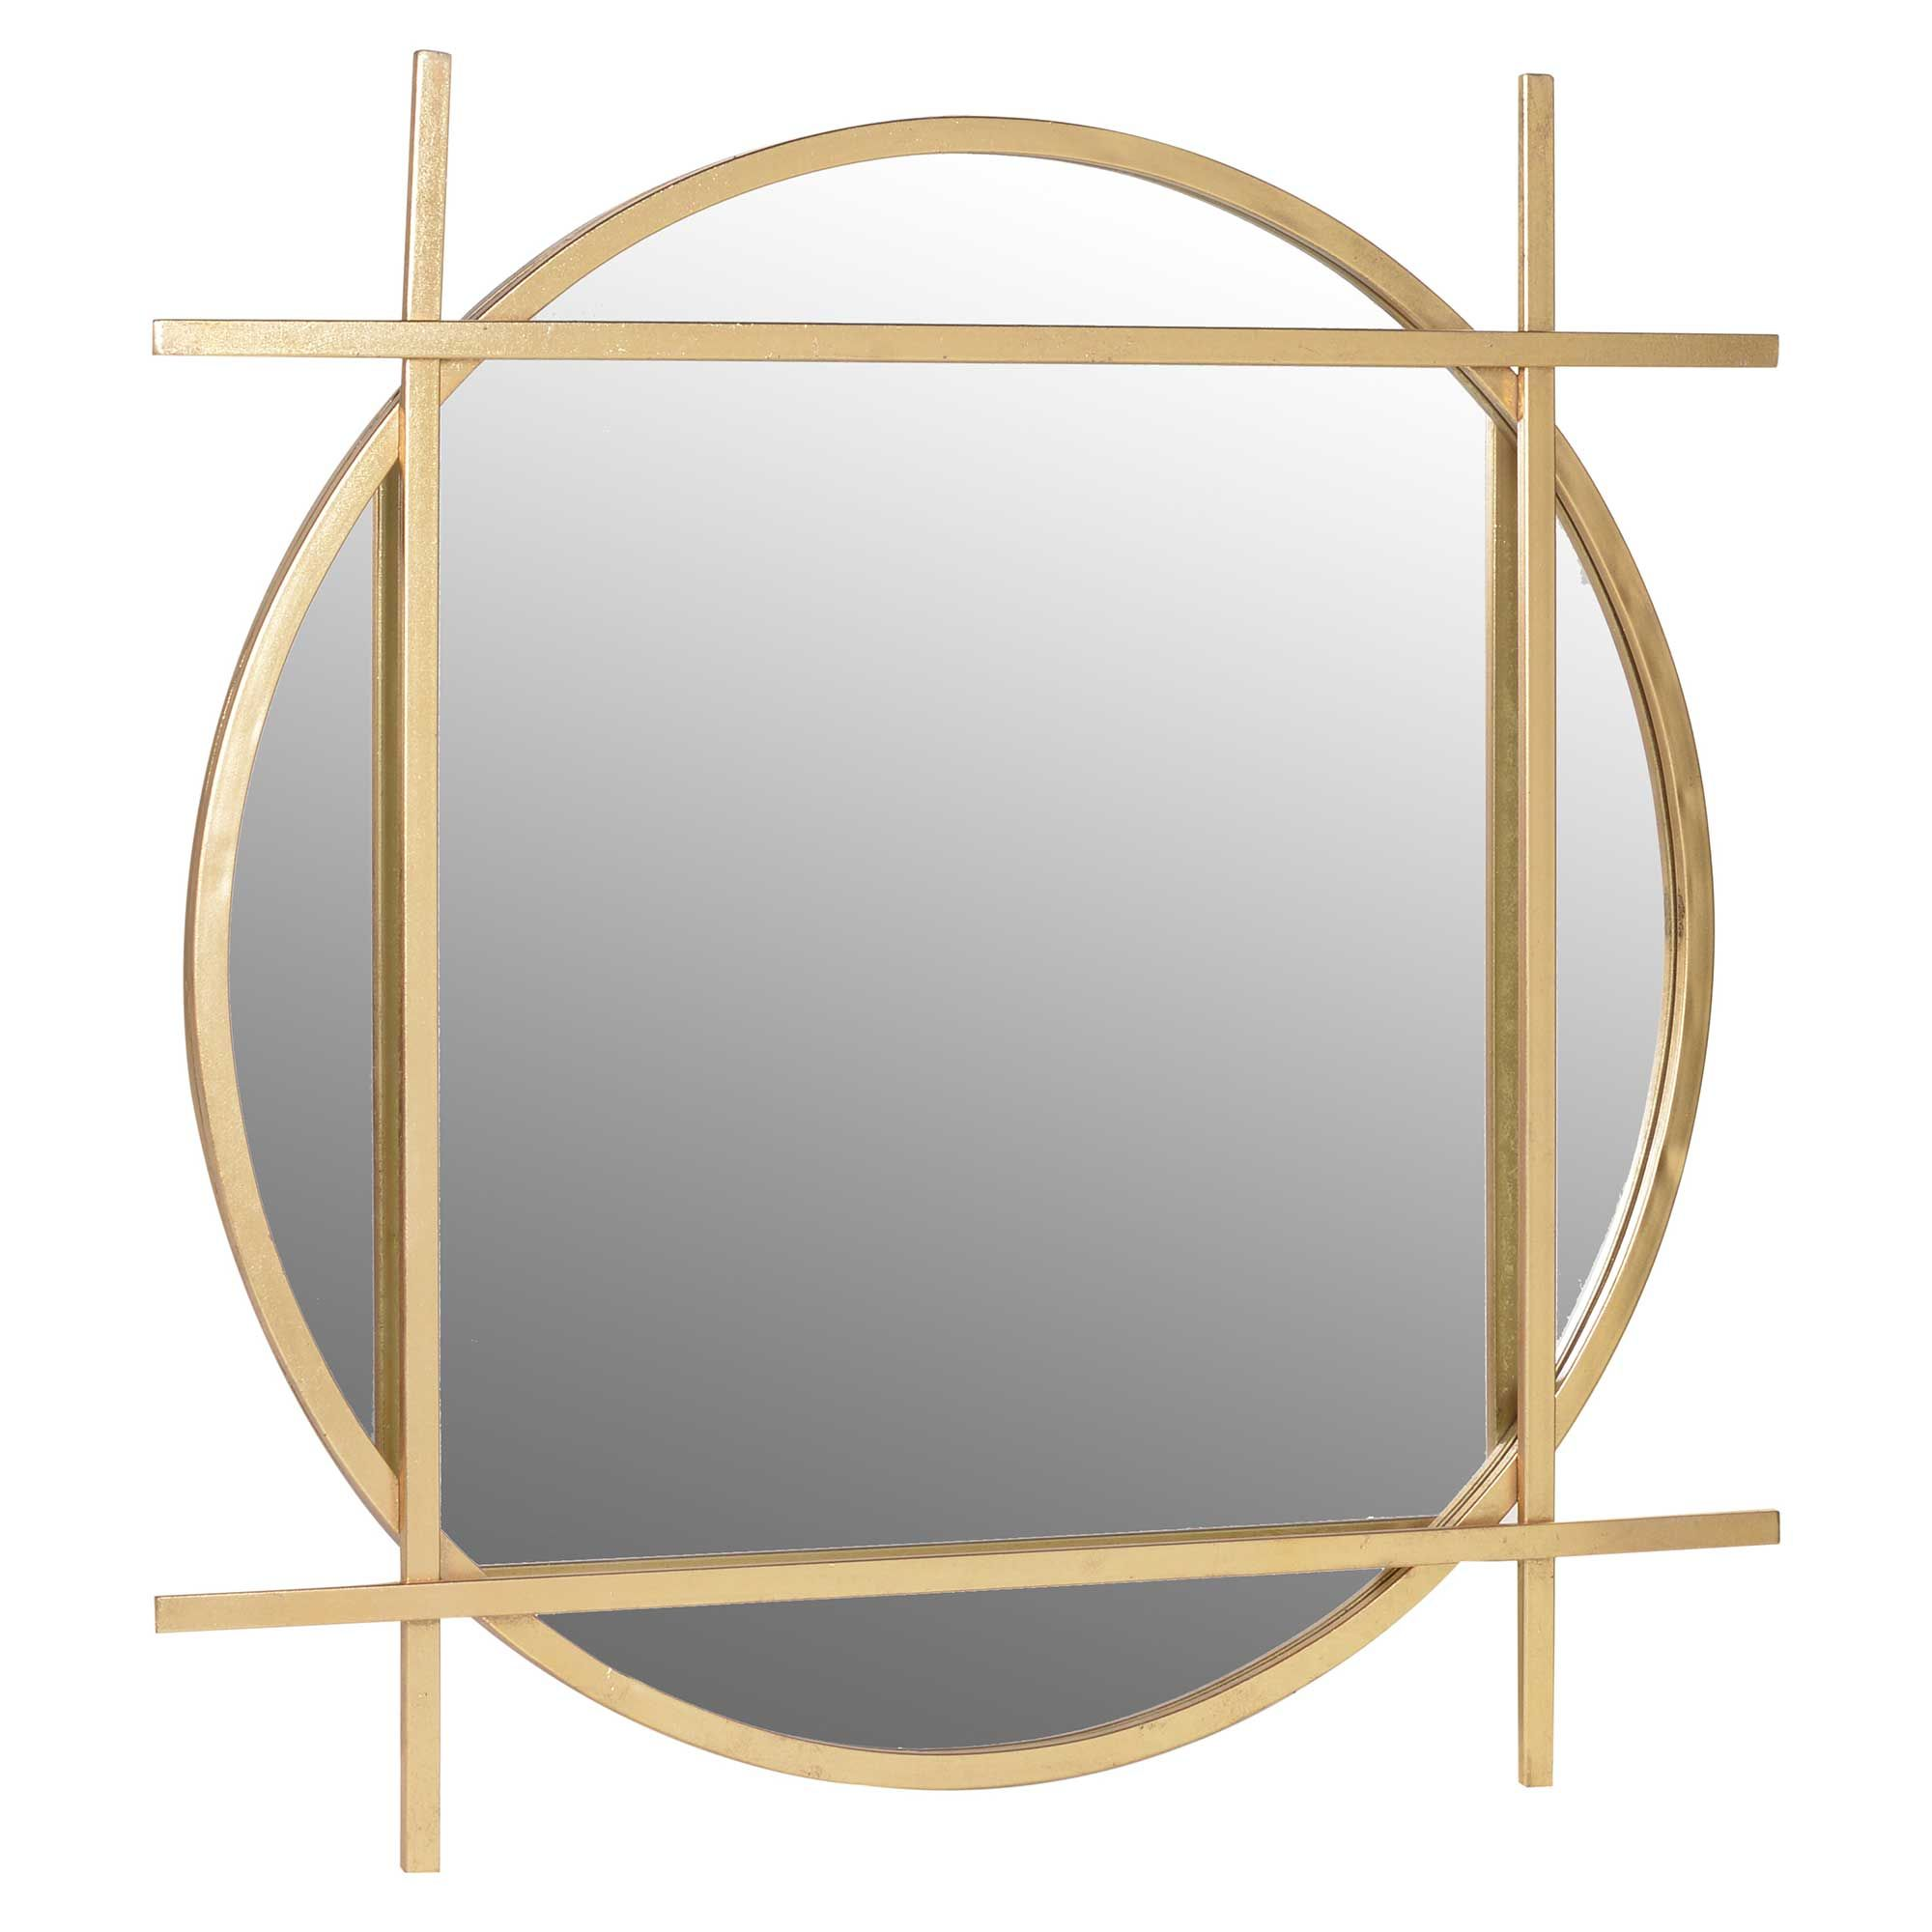 Circle Square Wall Mirror Gold Round Mirrors Barker Stonehouse Gold Framed Mirror Round Gold Mirror Mirror Wall